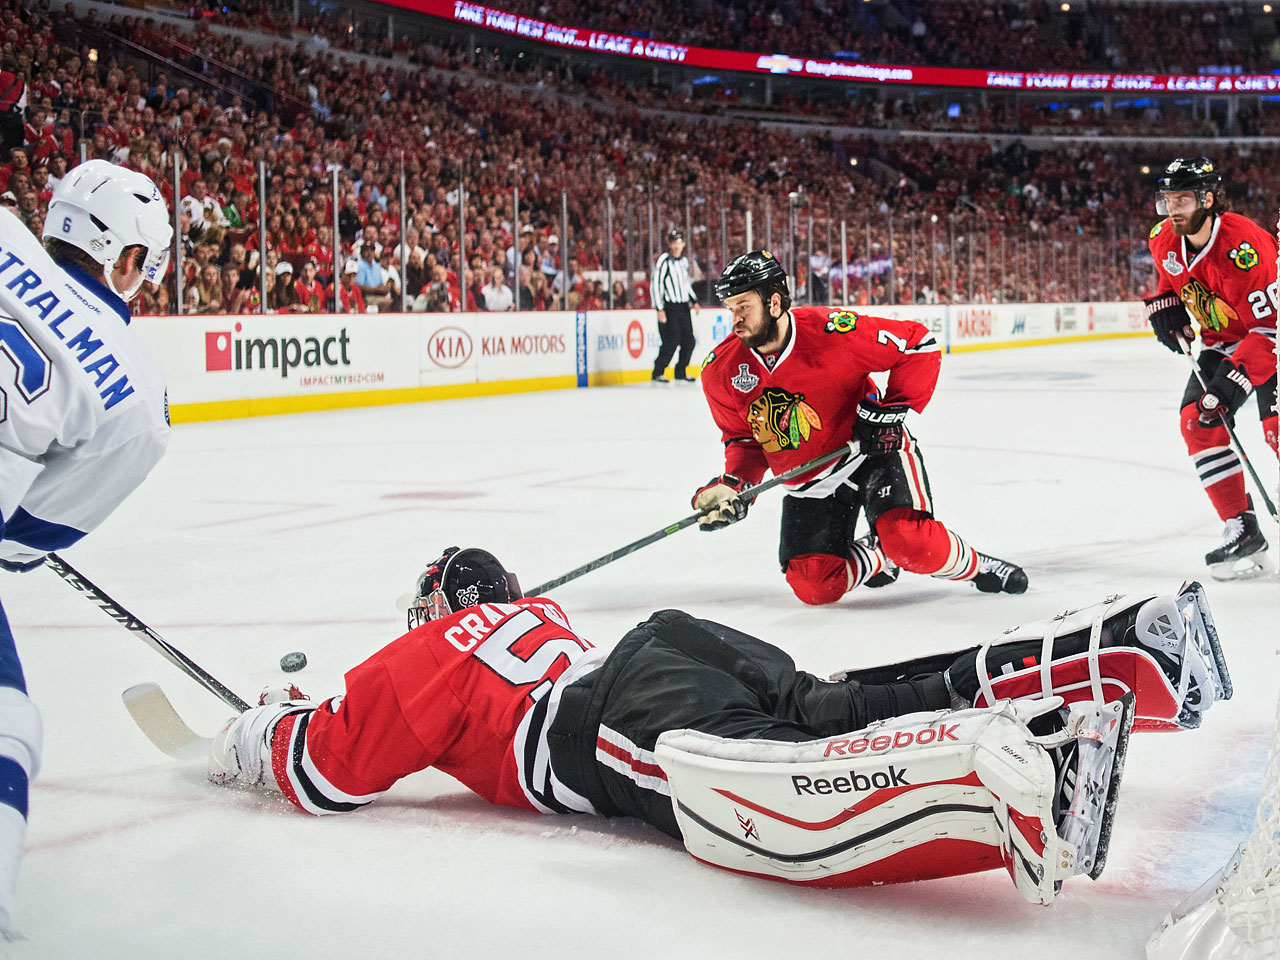 The Lightning had a handful of shots in the first two periods, but unleashed a barrage on Corey Crawford in the final minutes as they searched for an equalizer.